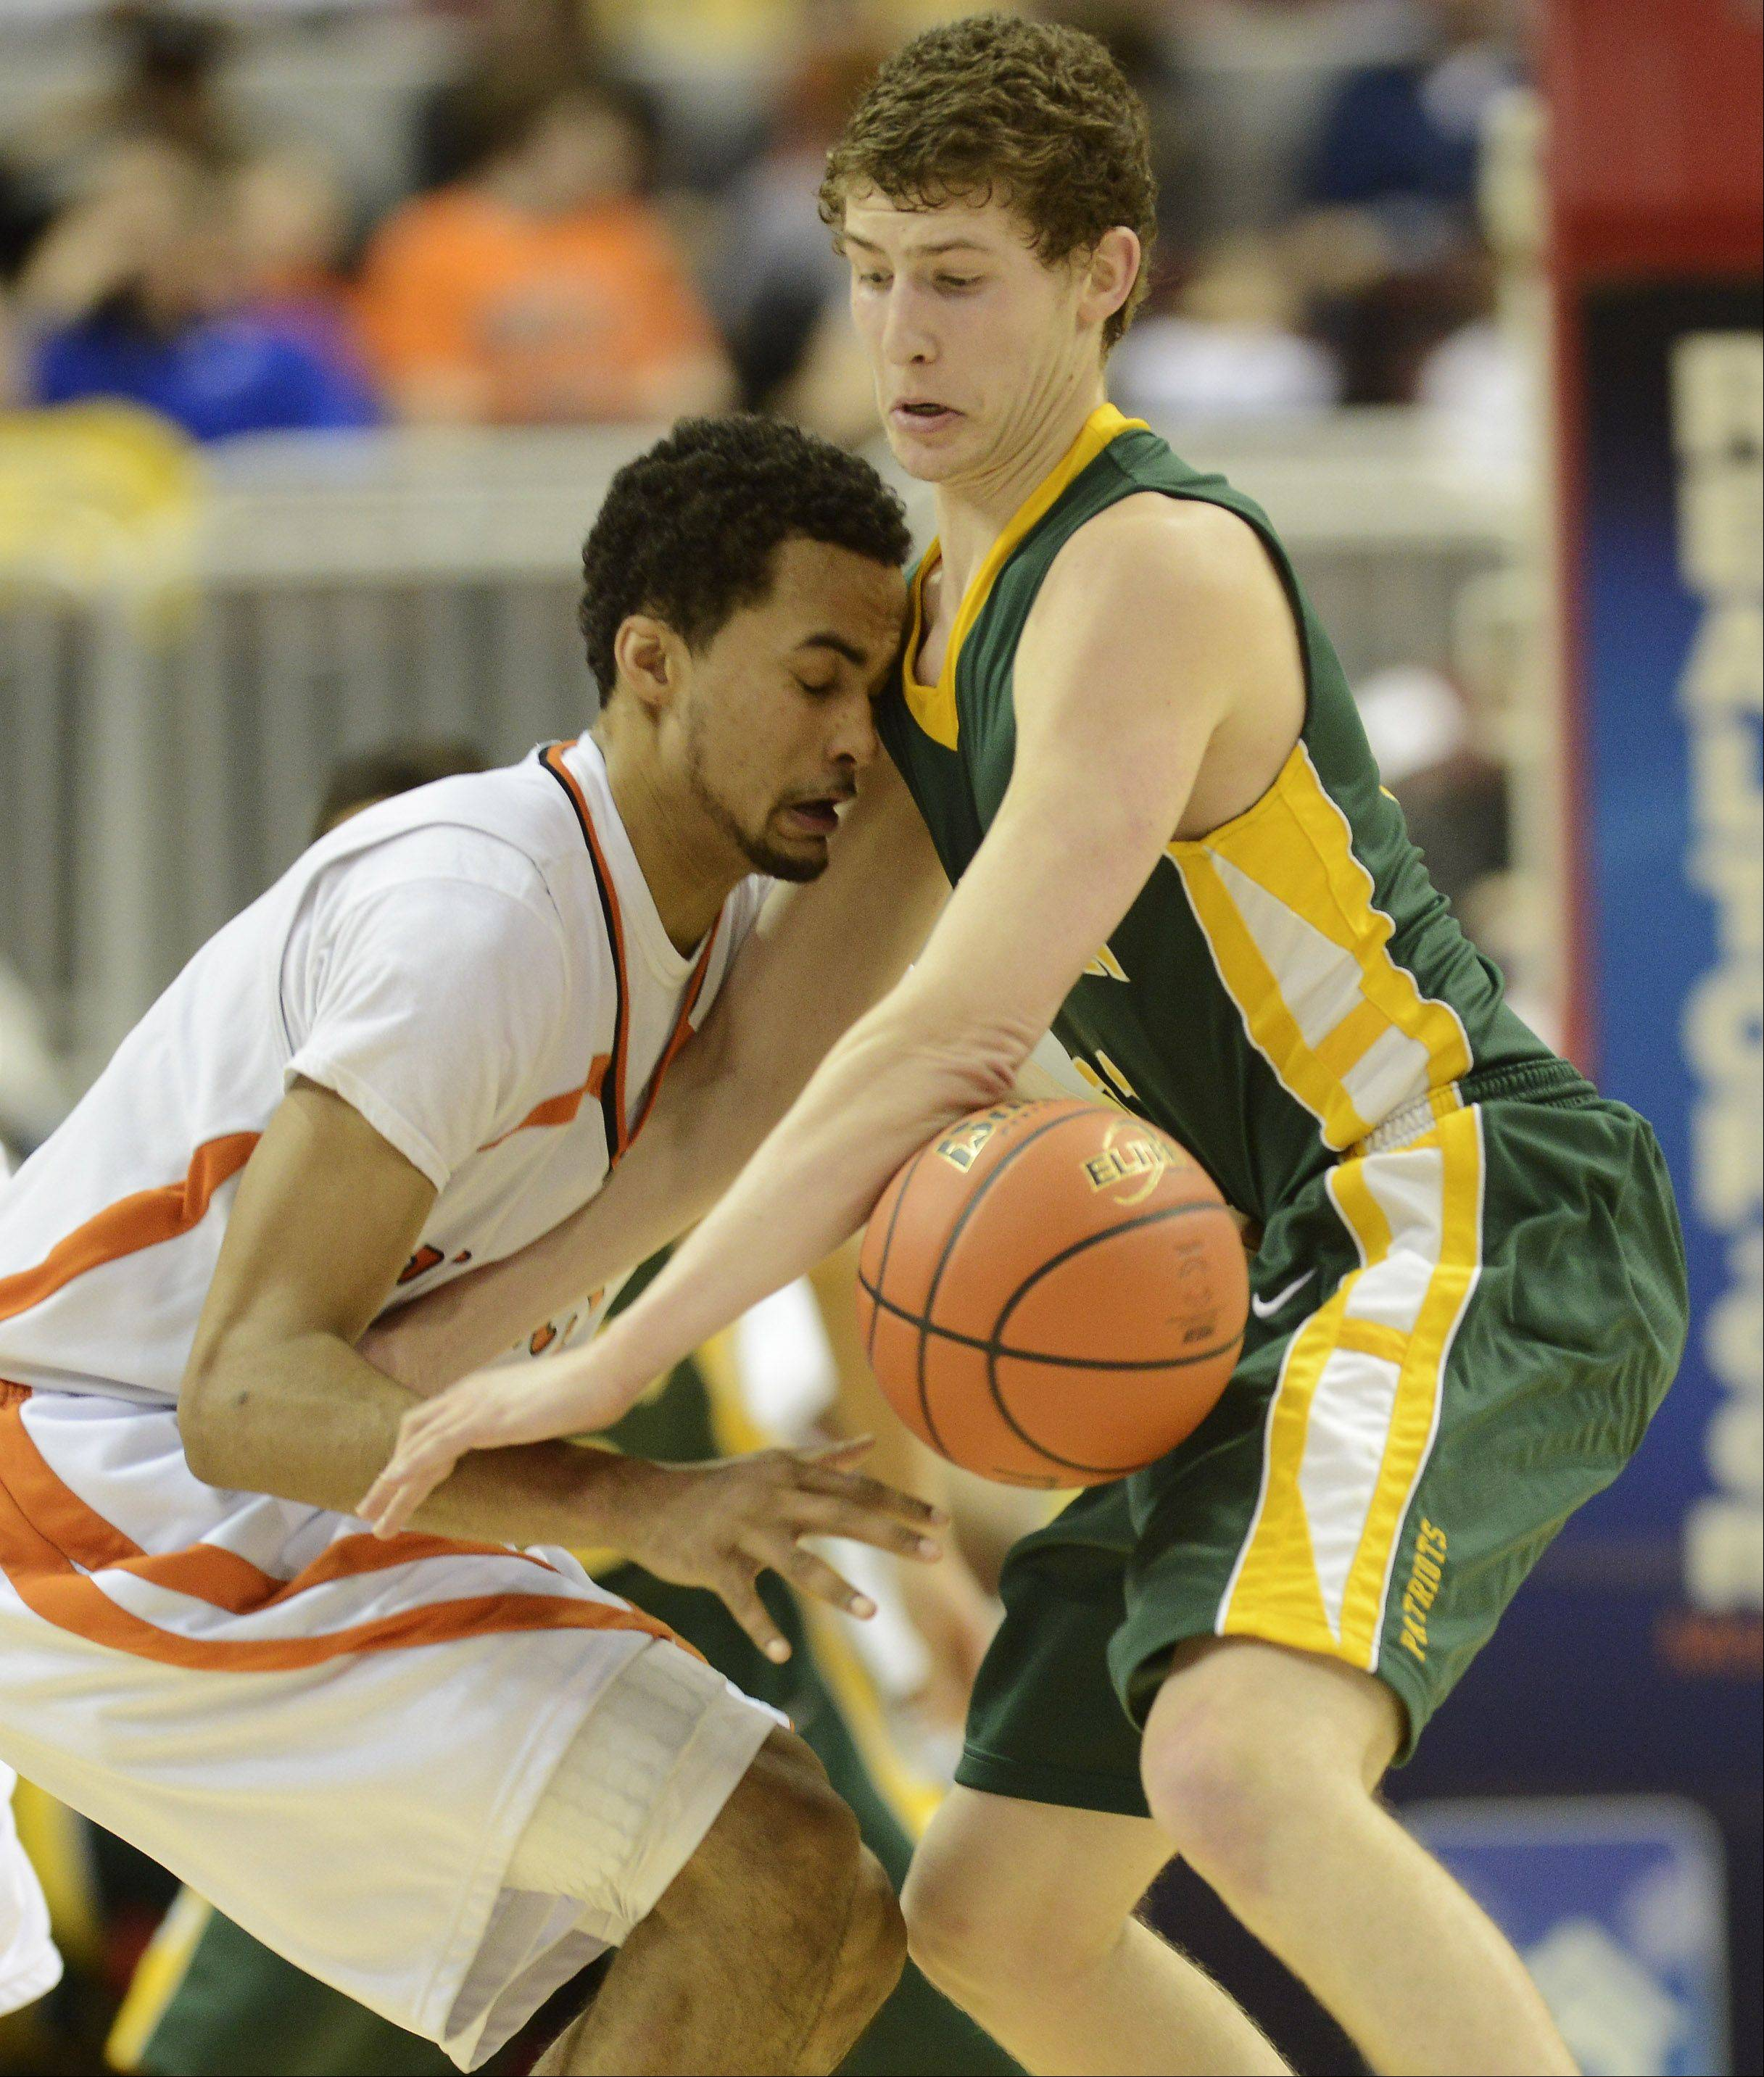 Stevenson's Andrew Stempel, right, takes the ball from Edwardsville's Tre' Harris during the Class 4A boys basketball state semifinals at Carver Arena in Peoria on Friday.